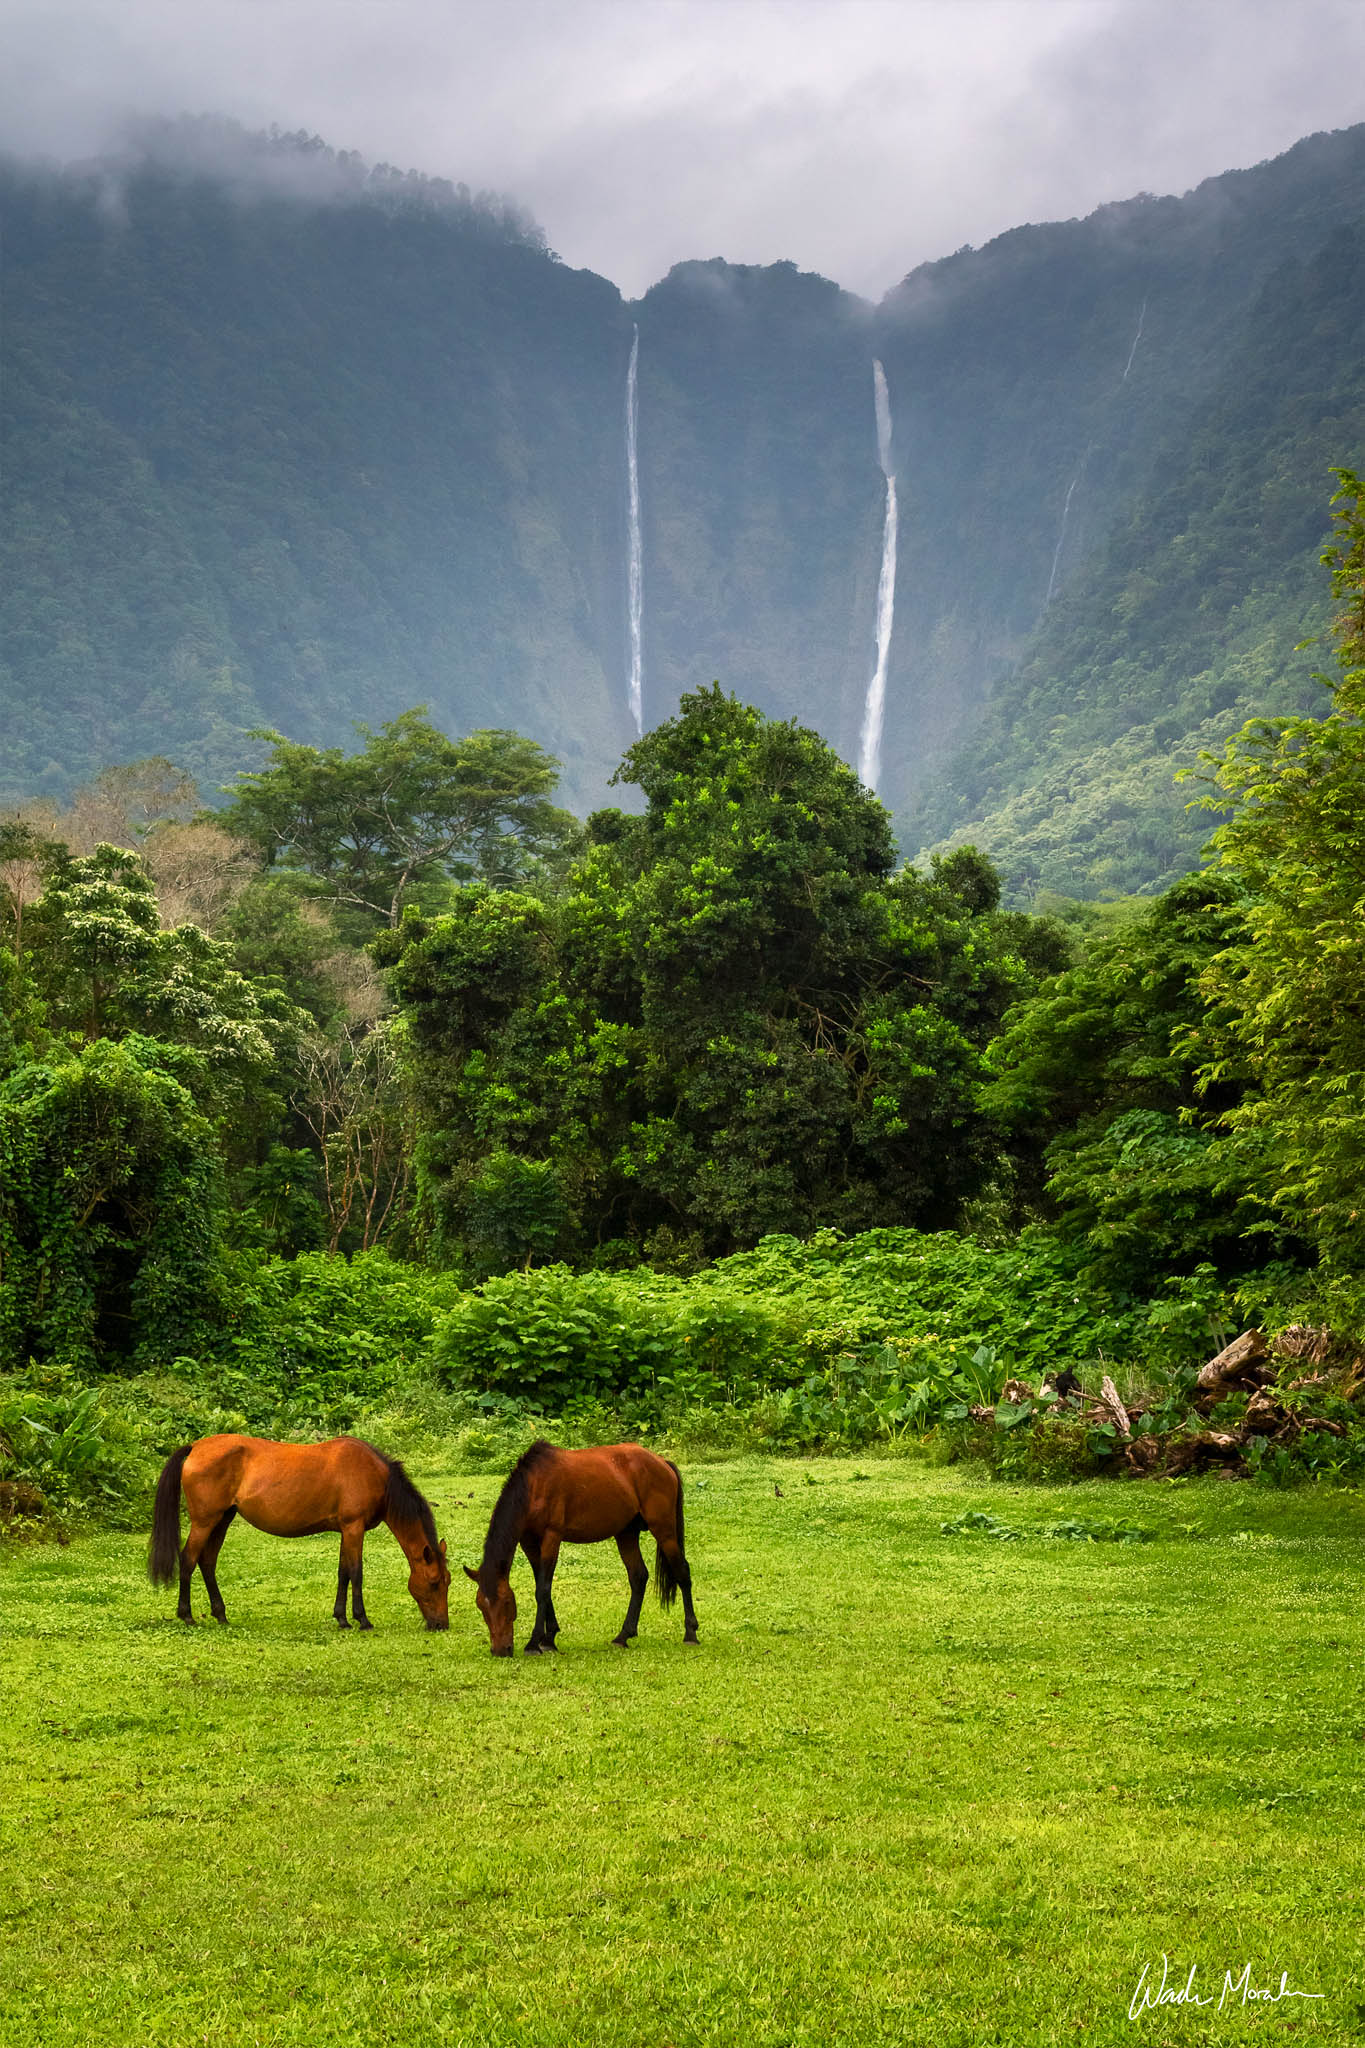 One of the most beautiful places on earth is Waipiʻo Valley. I feel so fortunate to have had the opportunity to visit this sacred...